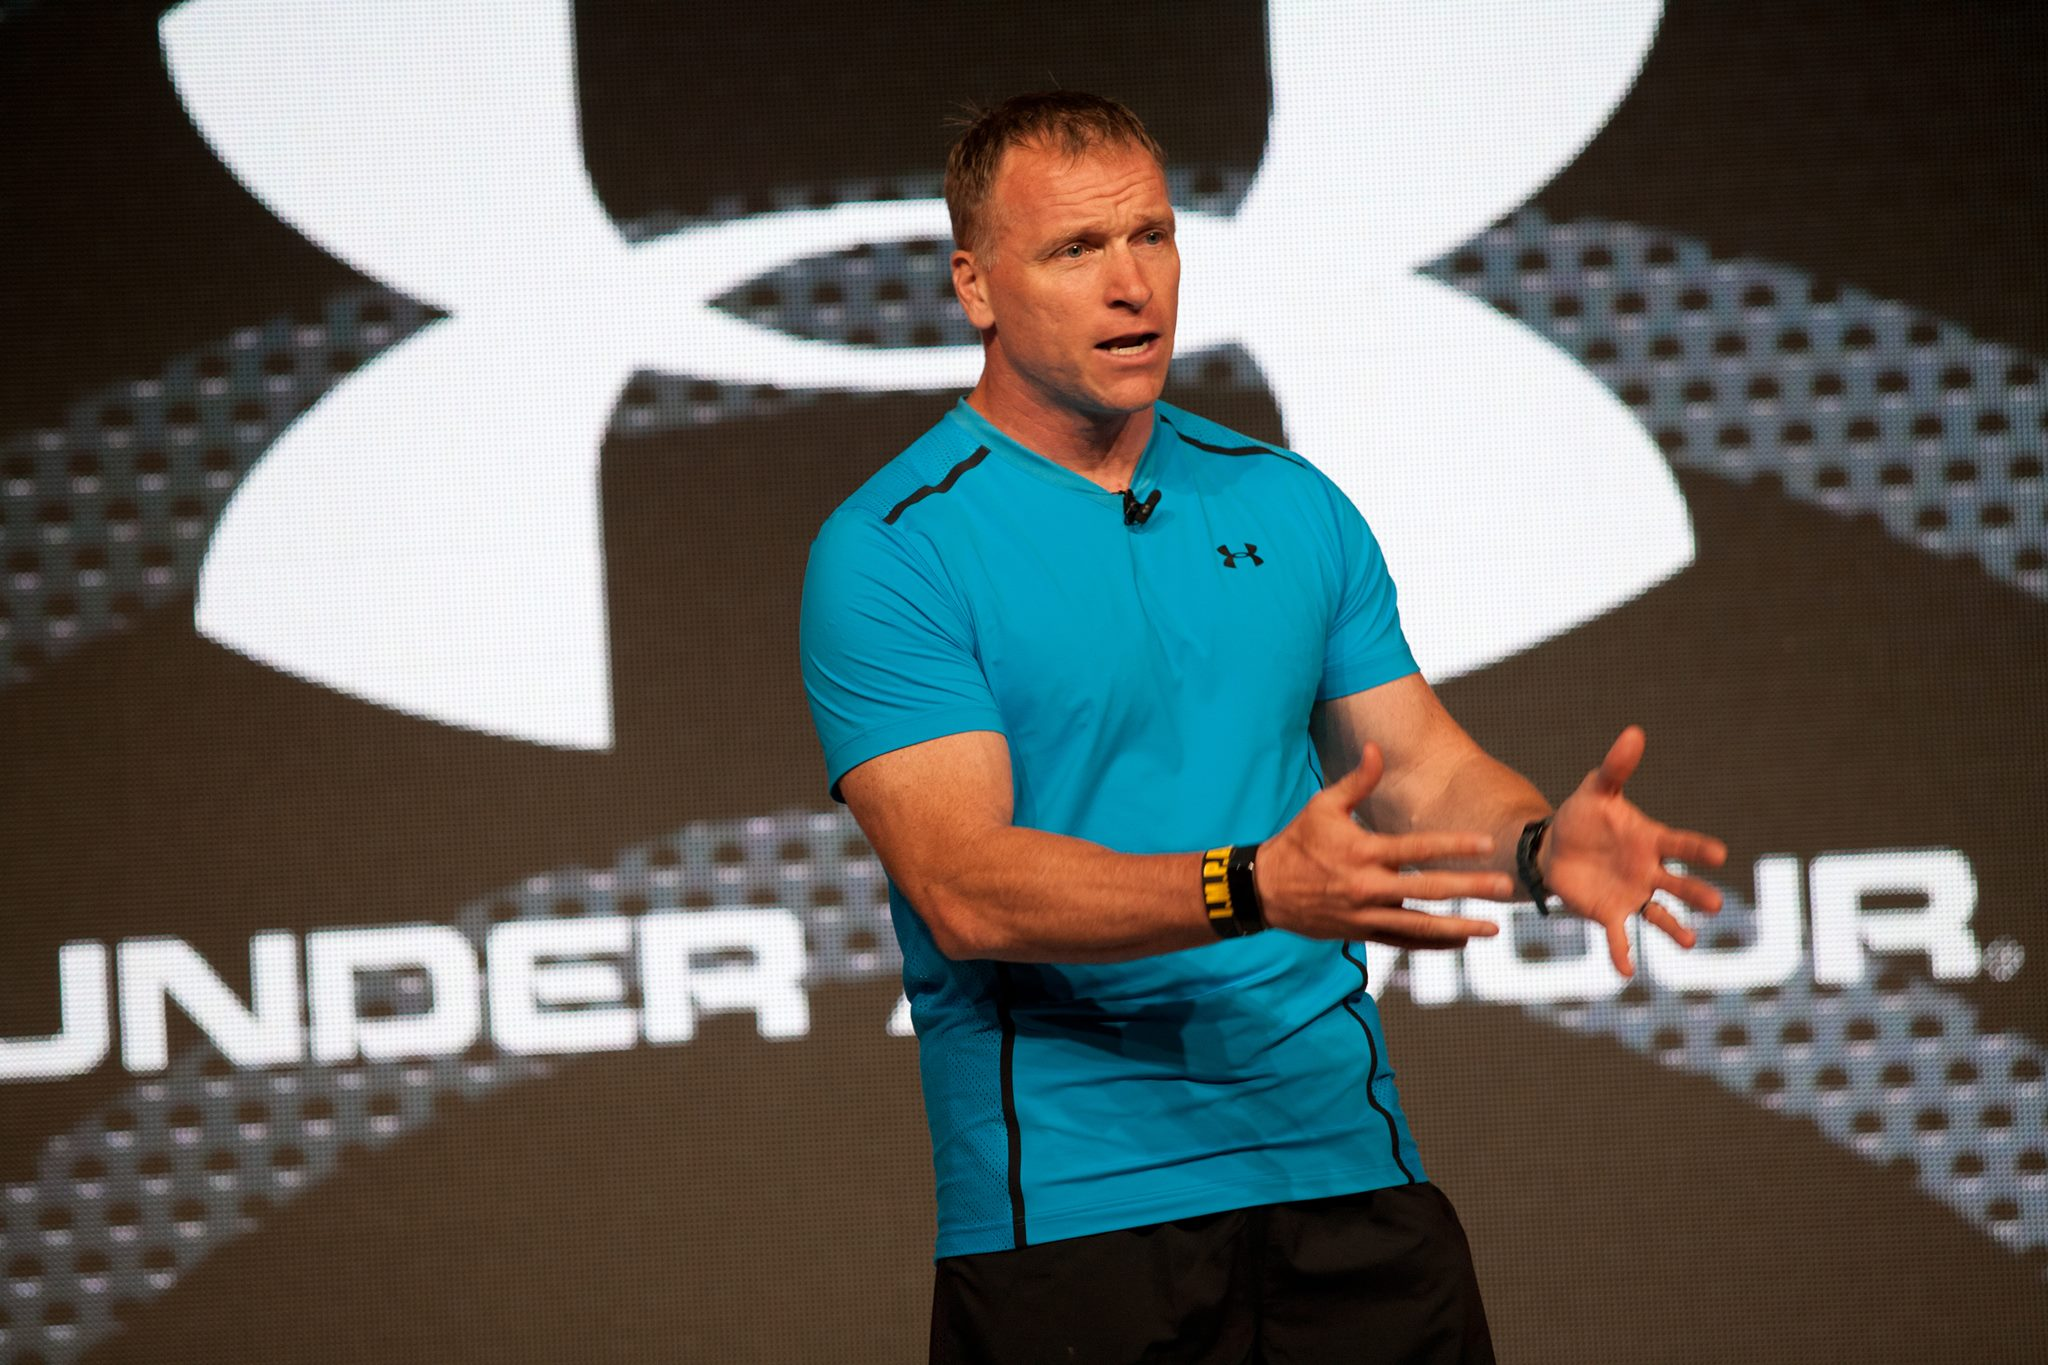 Todd Durkin's Year-End Advice for Executive & Entrepreneur Athletes!